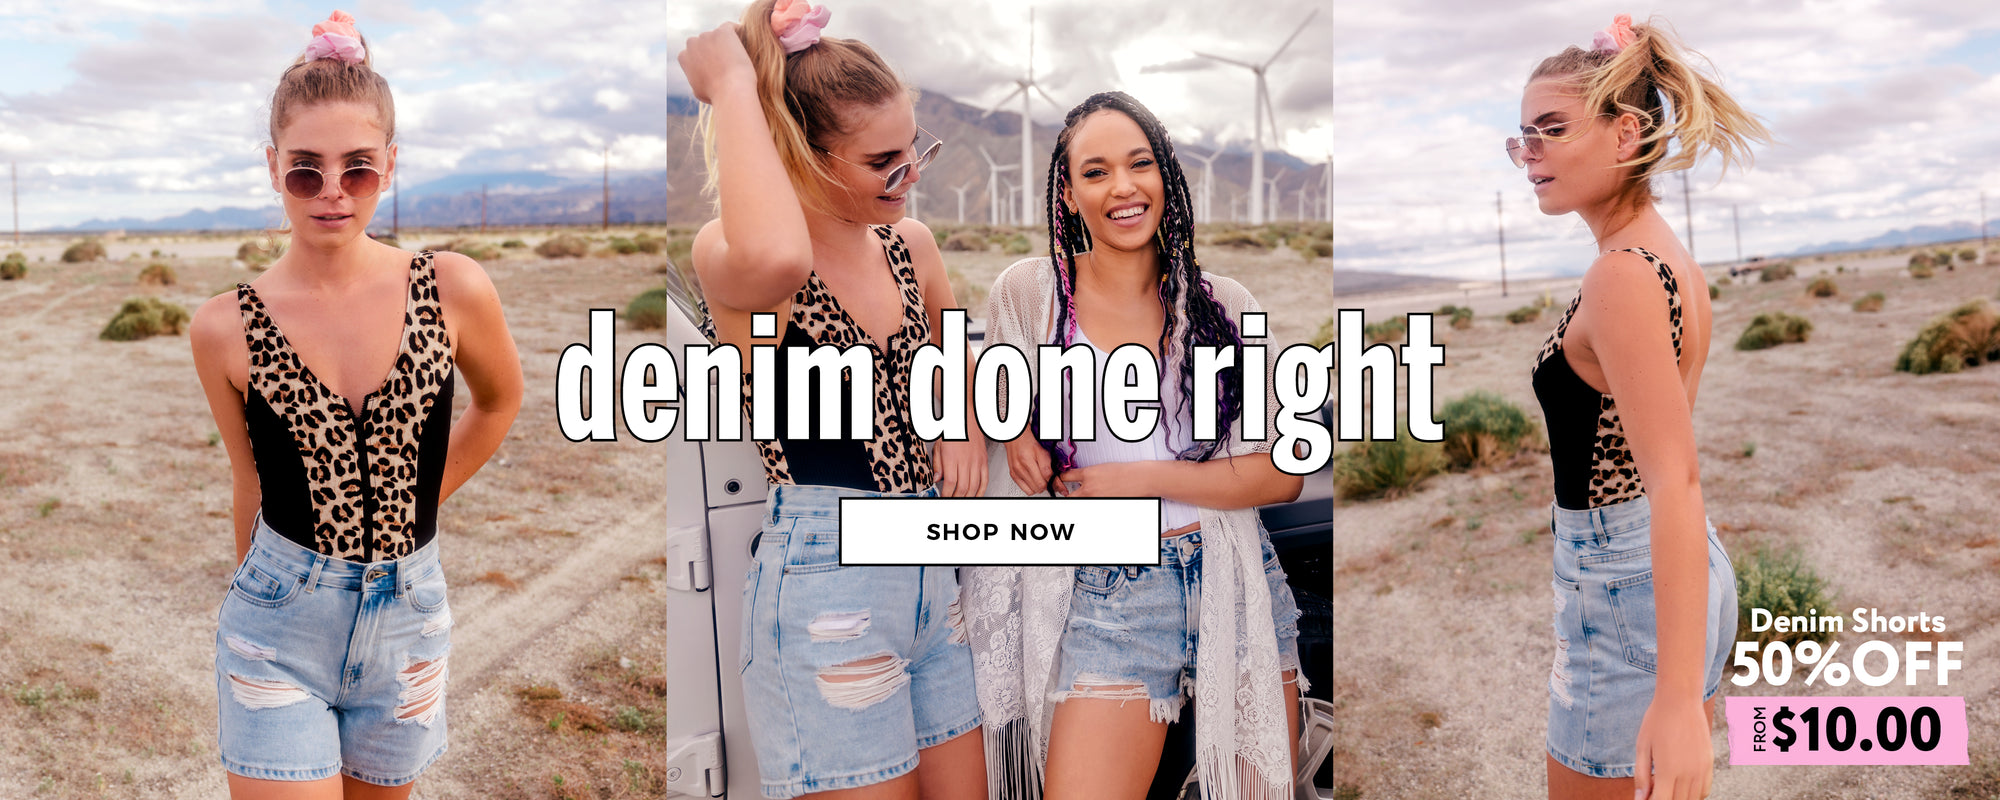 Urban Planet | 50% Off Denim - Shop Now